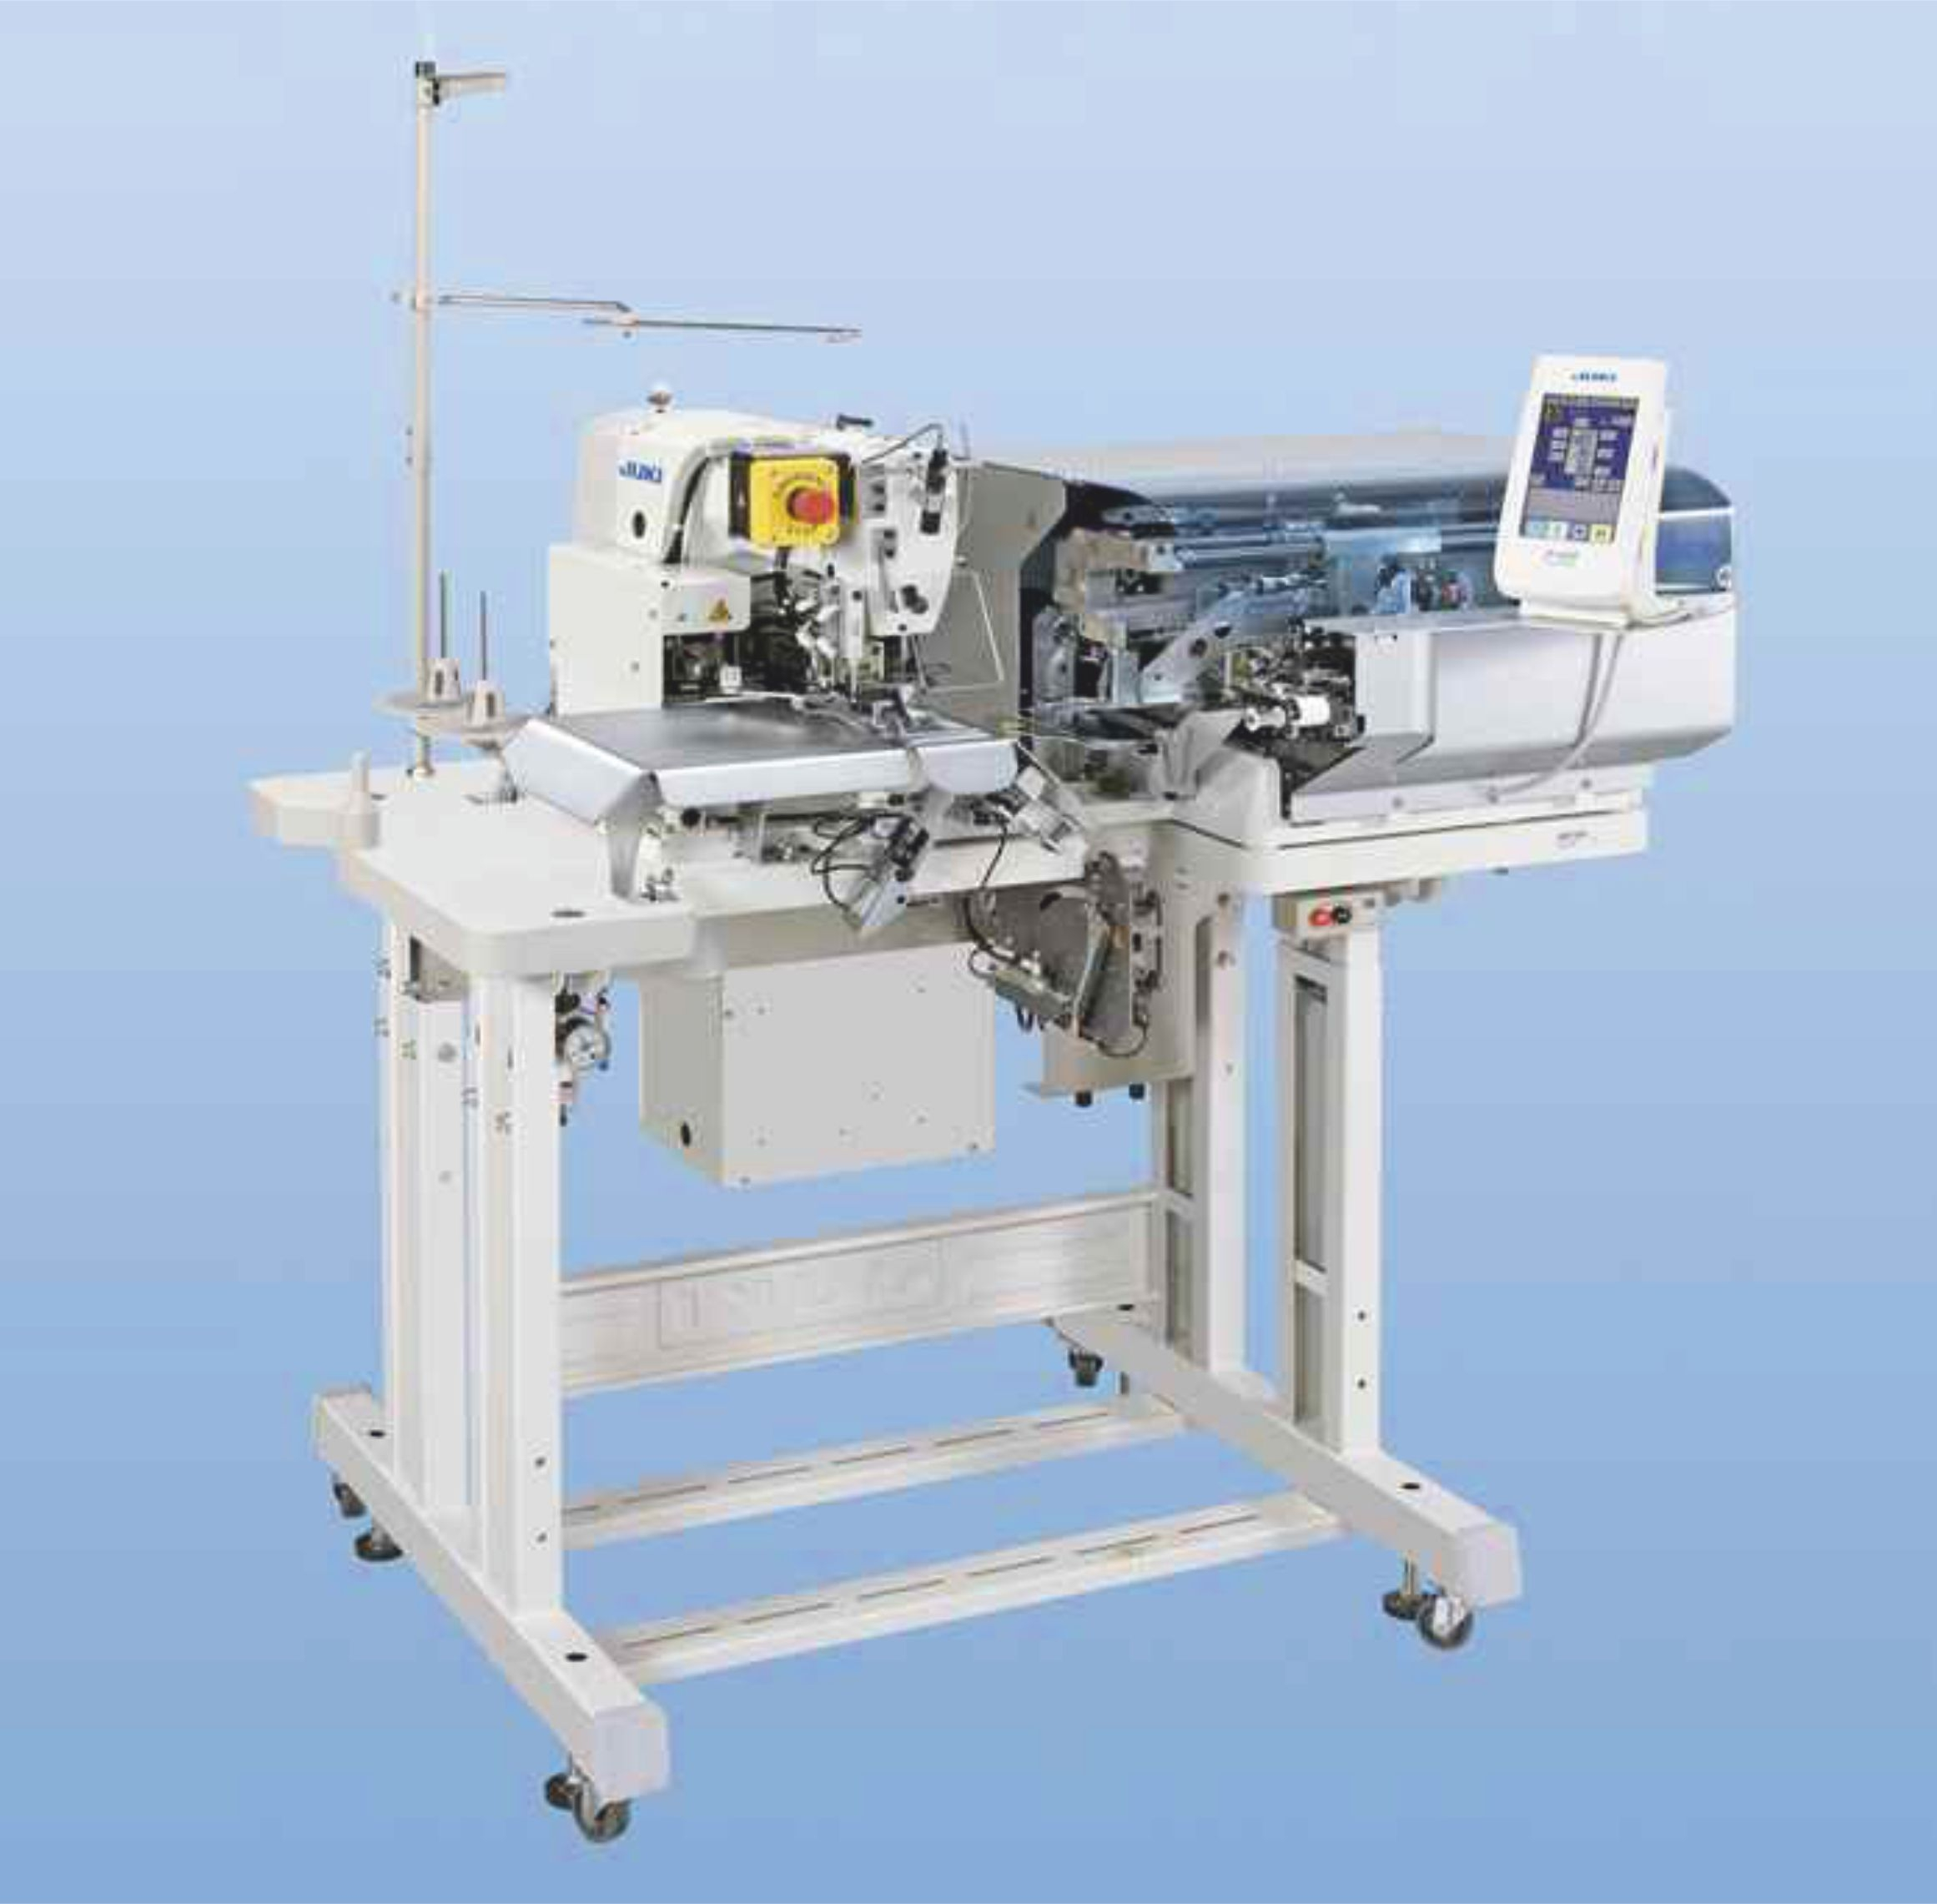 JUKI AB-1351 is a Single Needle Automatic Belt Loop Attaching Machine